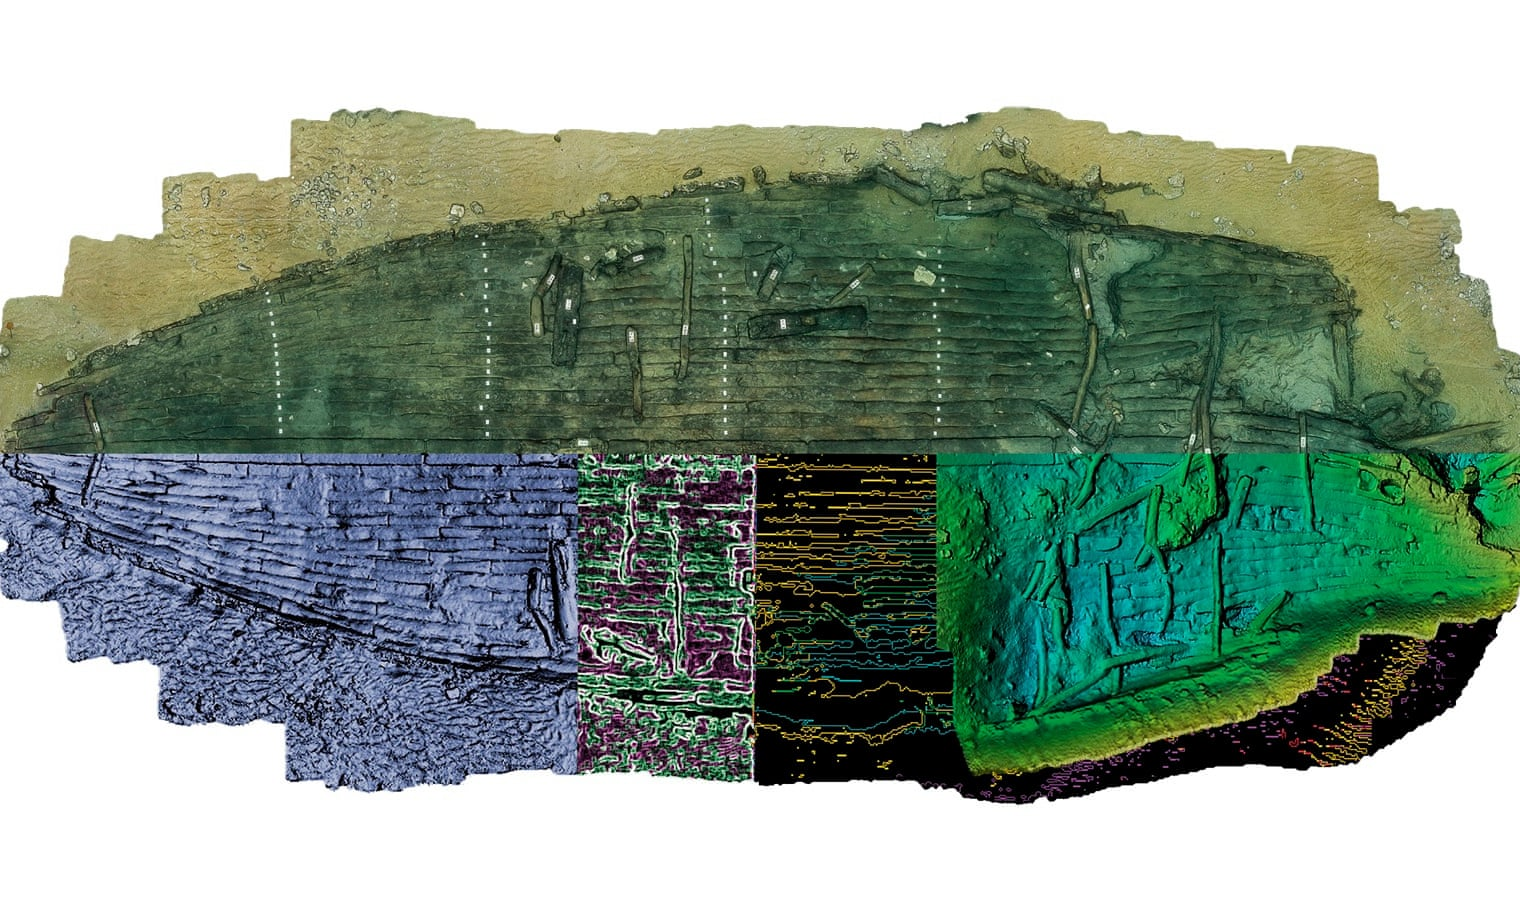 An artistic treatment of the discovered shipwreck. The upper half of the model illustrates the wreck as excavated. Below this, unexcavated areas are mirrored to produce a complete vessel outline. Photograph: Christoph Gerigk/Franck Goddio/Hilti Foundation